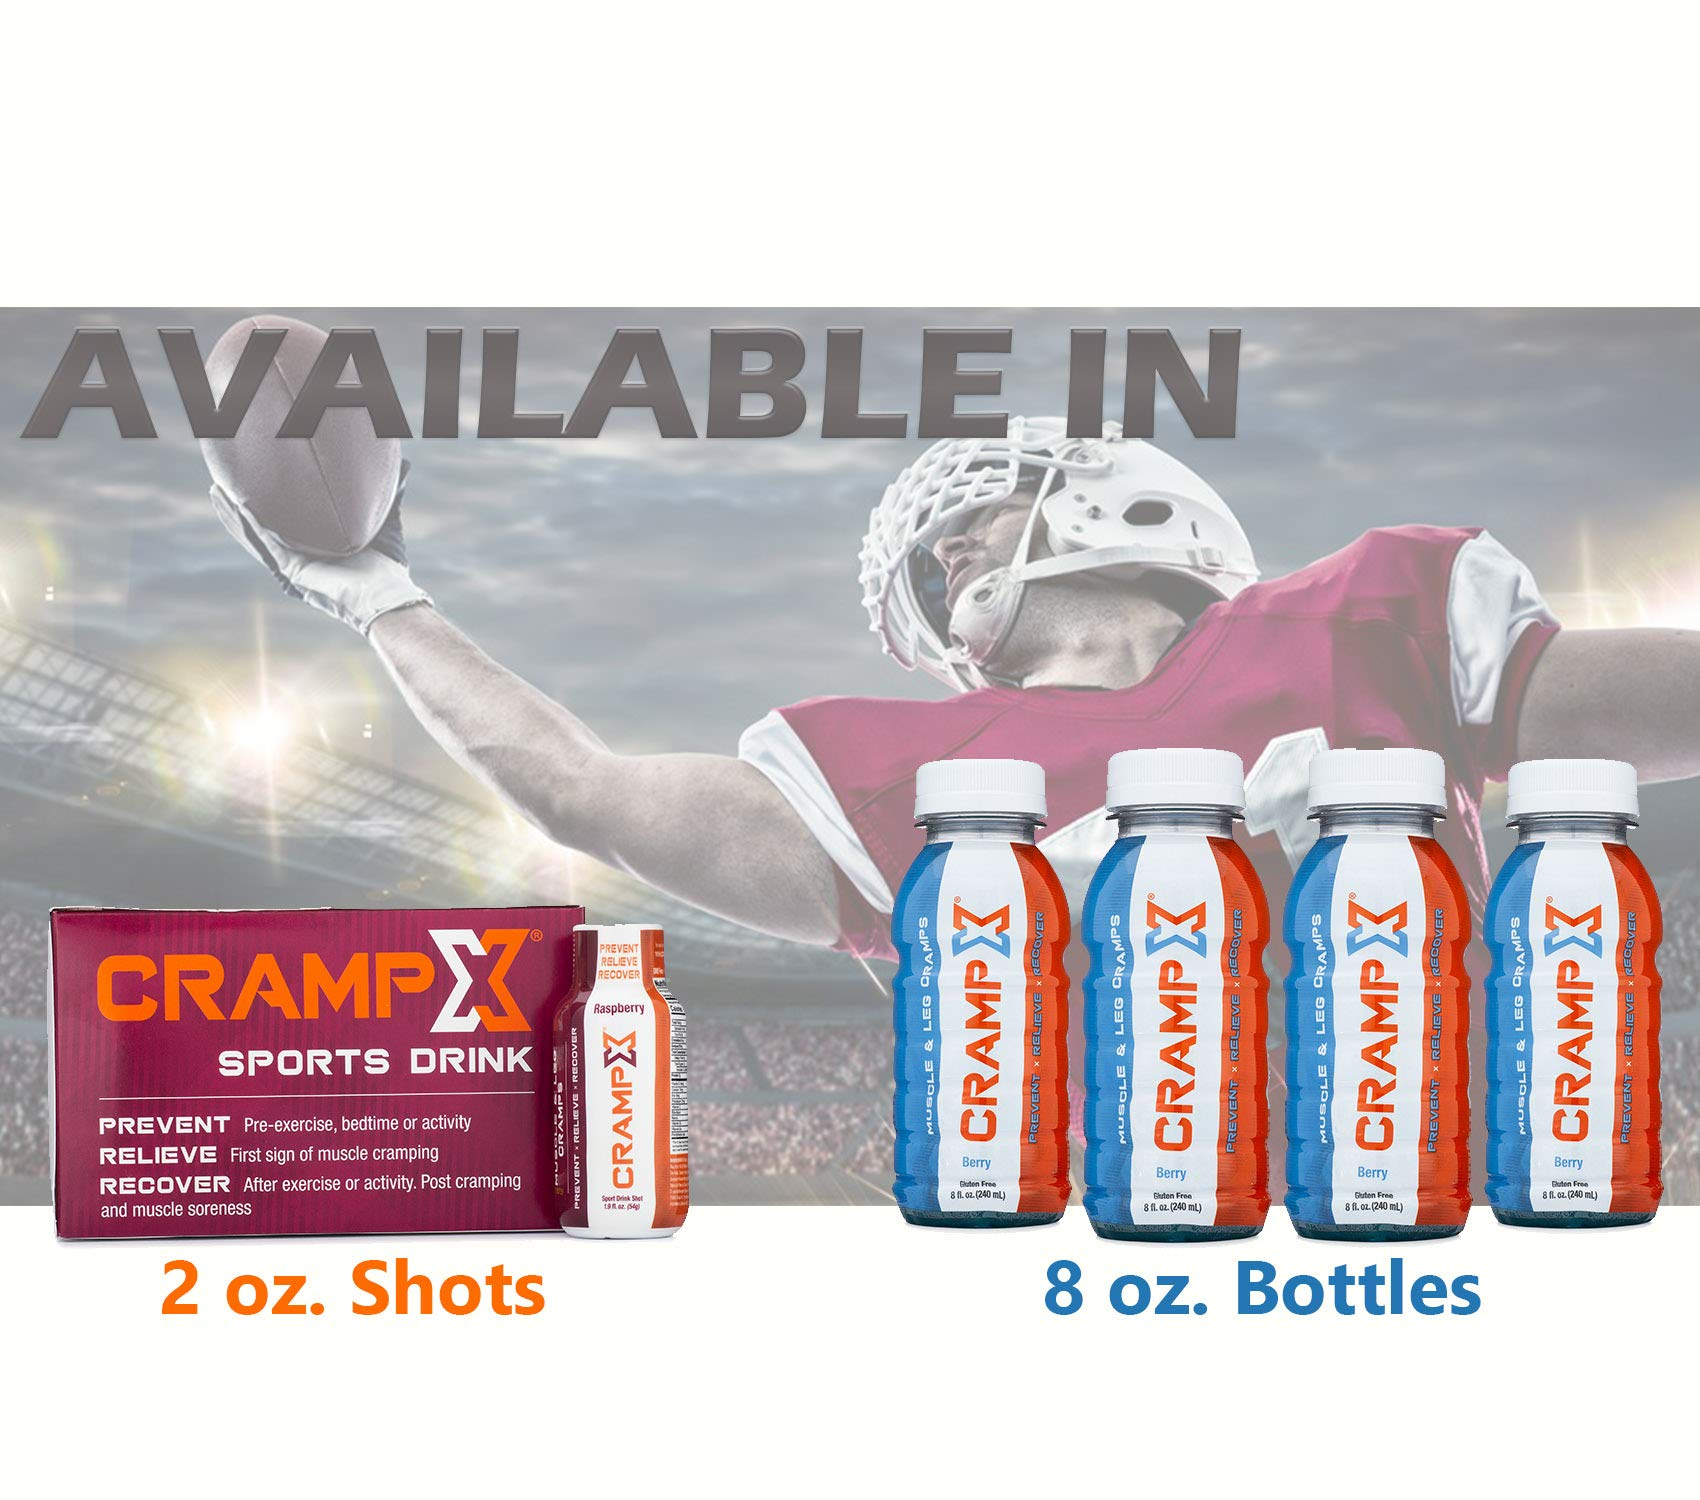 CrampX Muscle Cramp Relief Drink | Proven to Prevent and Treat Muscle Cramps in Seconds | Gluten Free Cramp Remedy for Hand Cramps, Leg Cramps, Foot Cramps | Raspberry 2 oz - Pack of 12 by CrampX (Image #7)